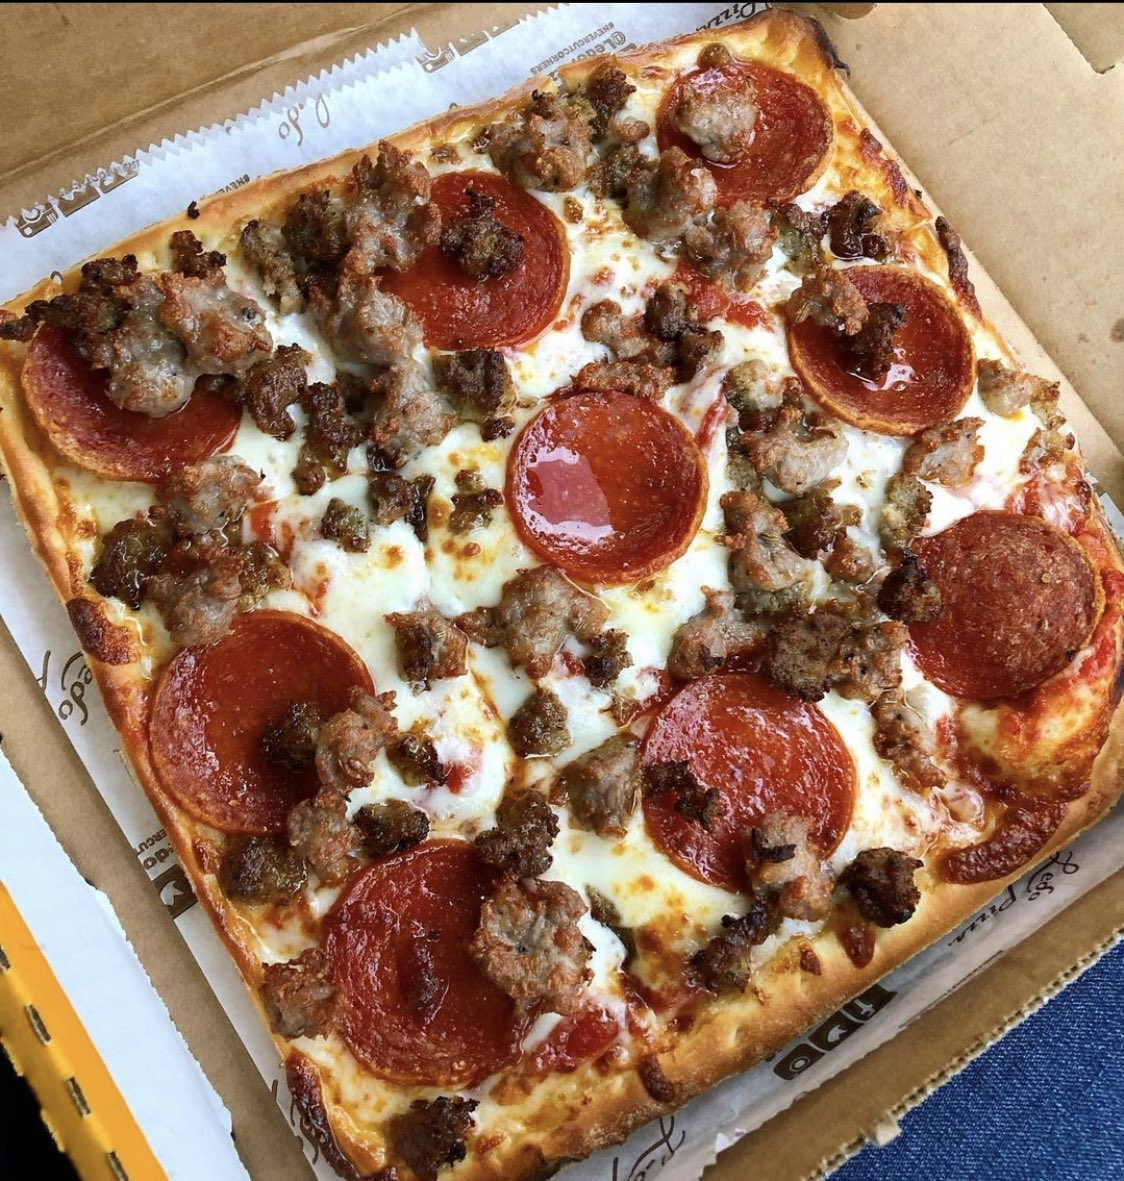 ‼️ #FridayFeeling GIVEAWAY ‼️  RETWEET & FOLLOW  for a chance to win a  $50 #LEDOPIZZA GIFT CARD!  (1 winner picked at 10pm 10/23/20)  🍁 Oktoberfest has arrived at Ledo Pizza, try our NEW Bavarian Soft Pretzel 🥨 appetizer!   Order Online!